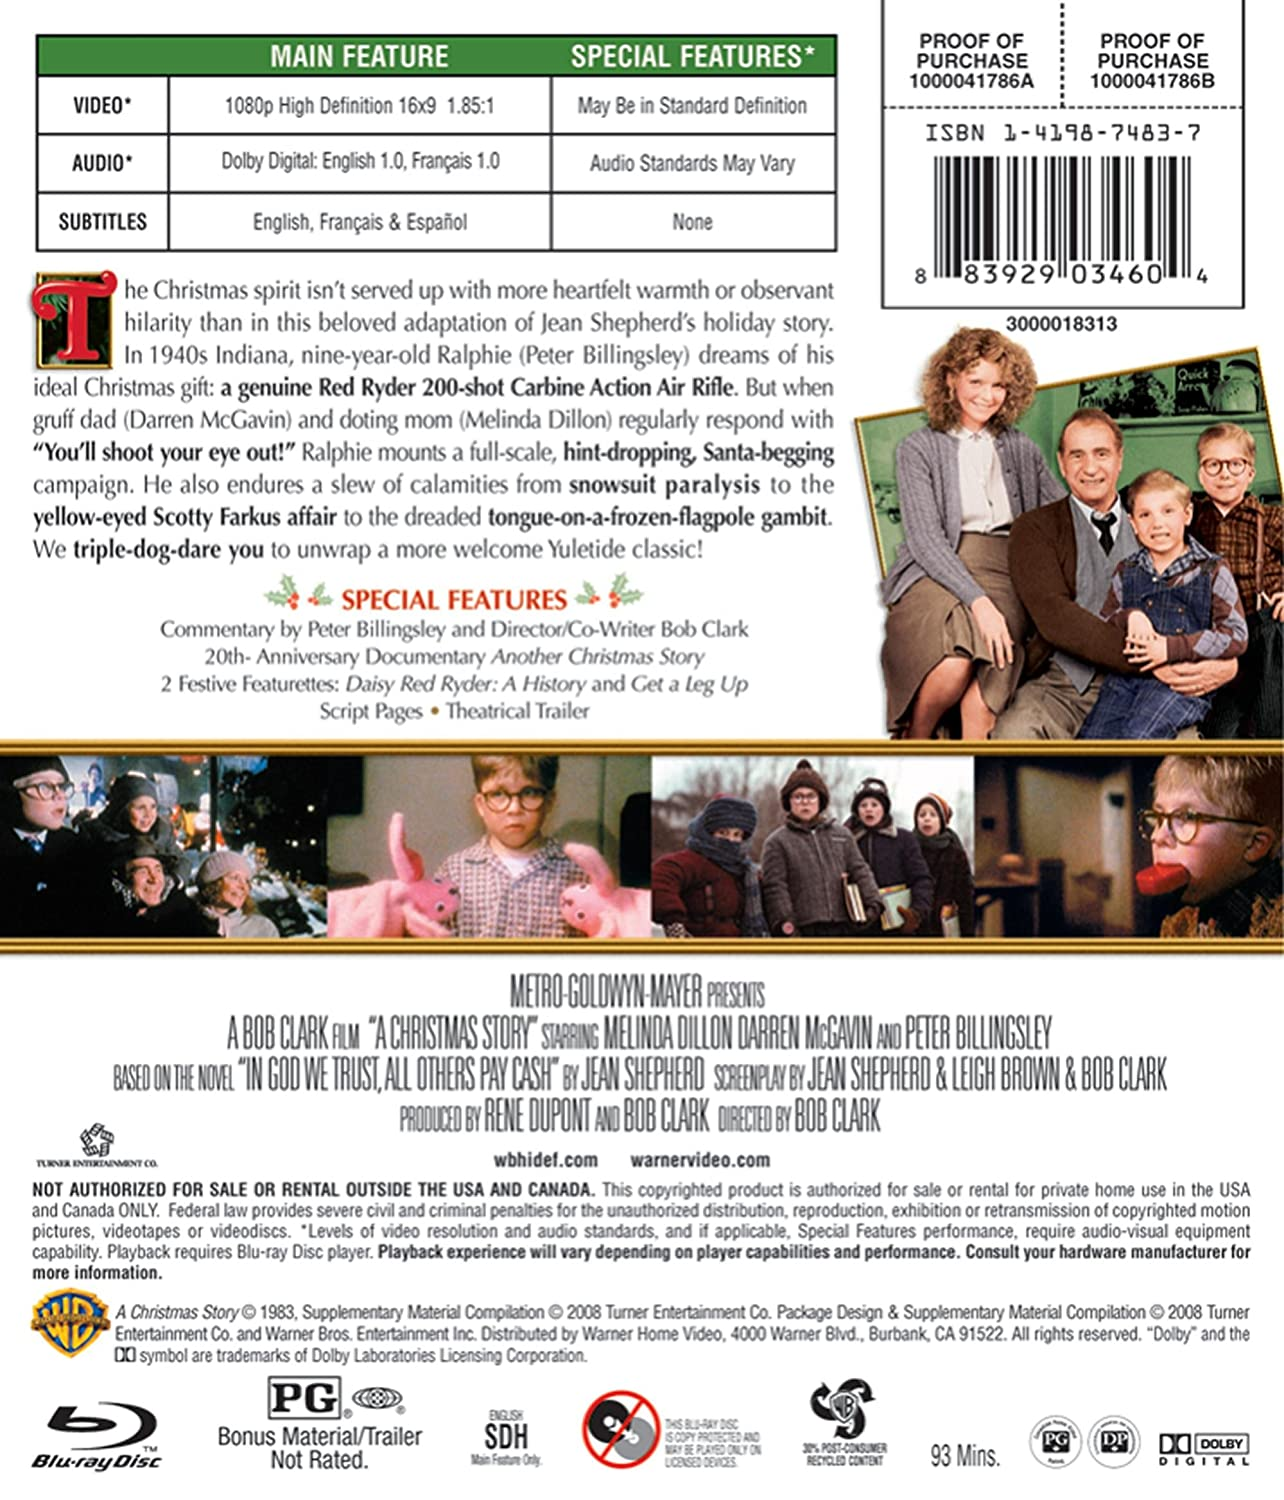 A A Christmas Story Blu-ray 1983 US Import 2008: Amazon.co.uk: DVD ...